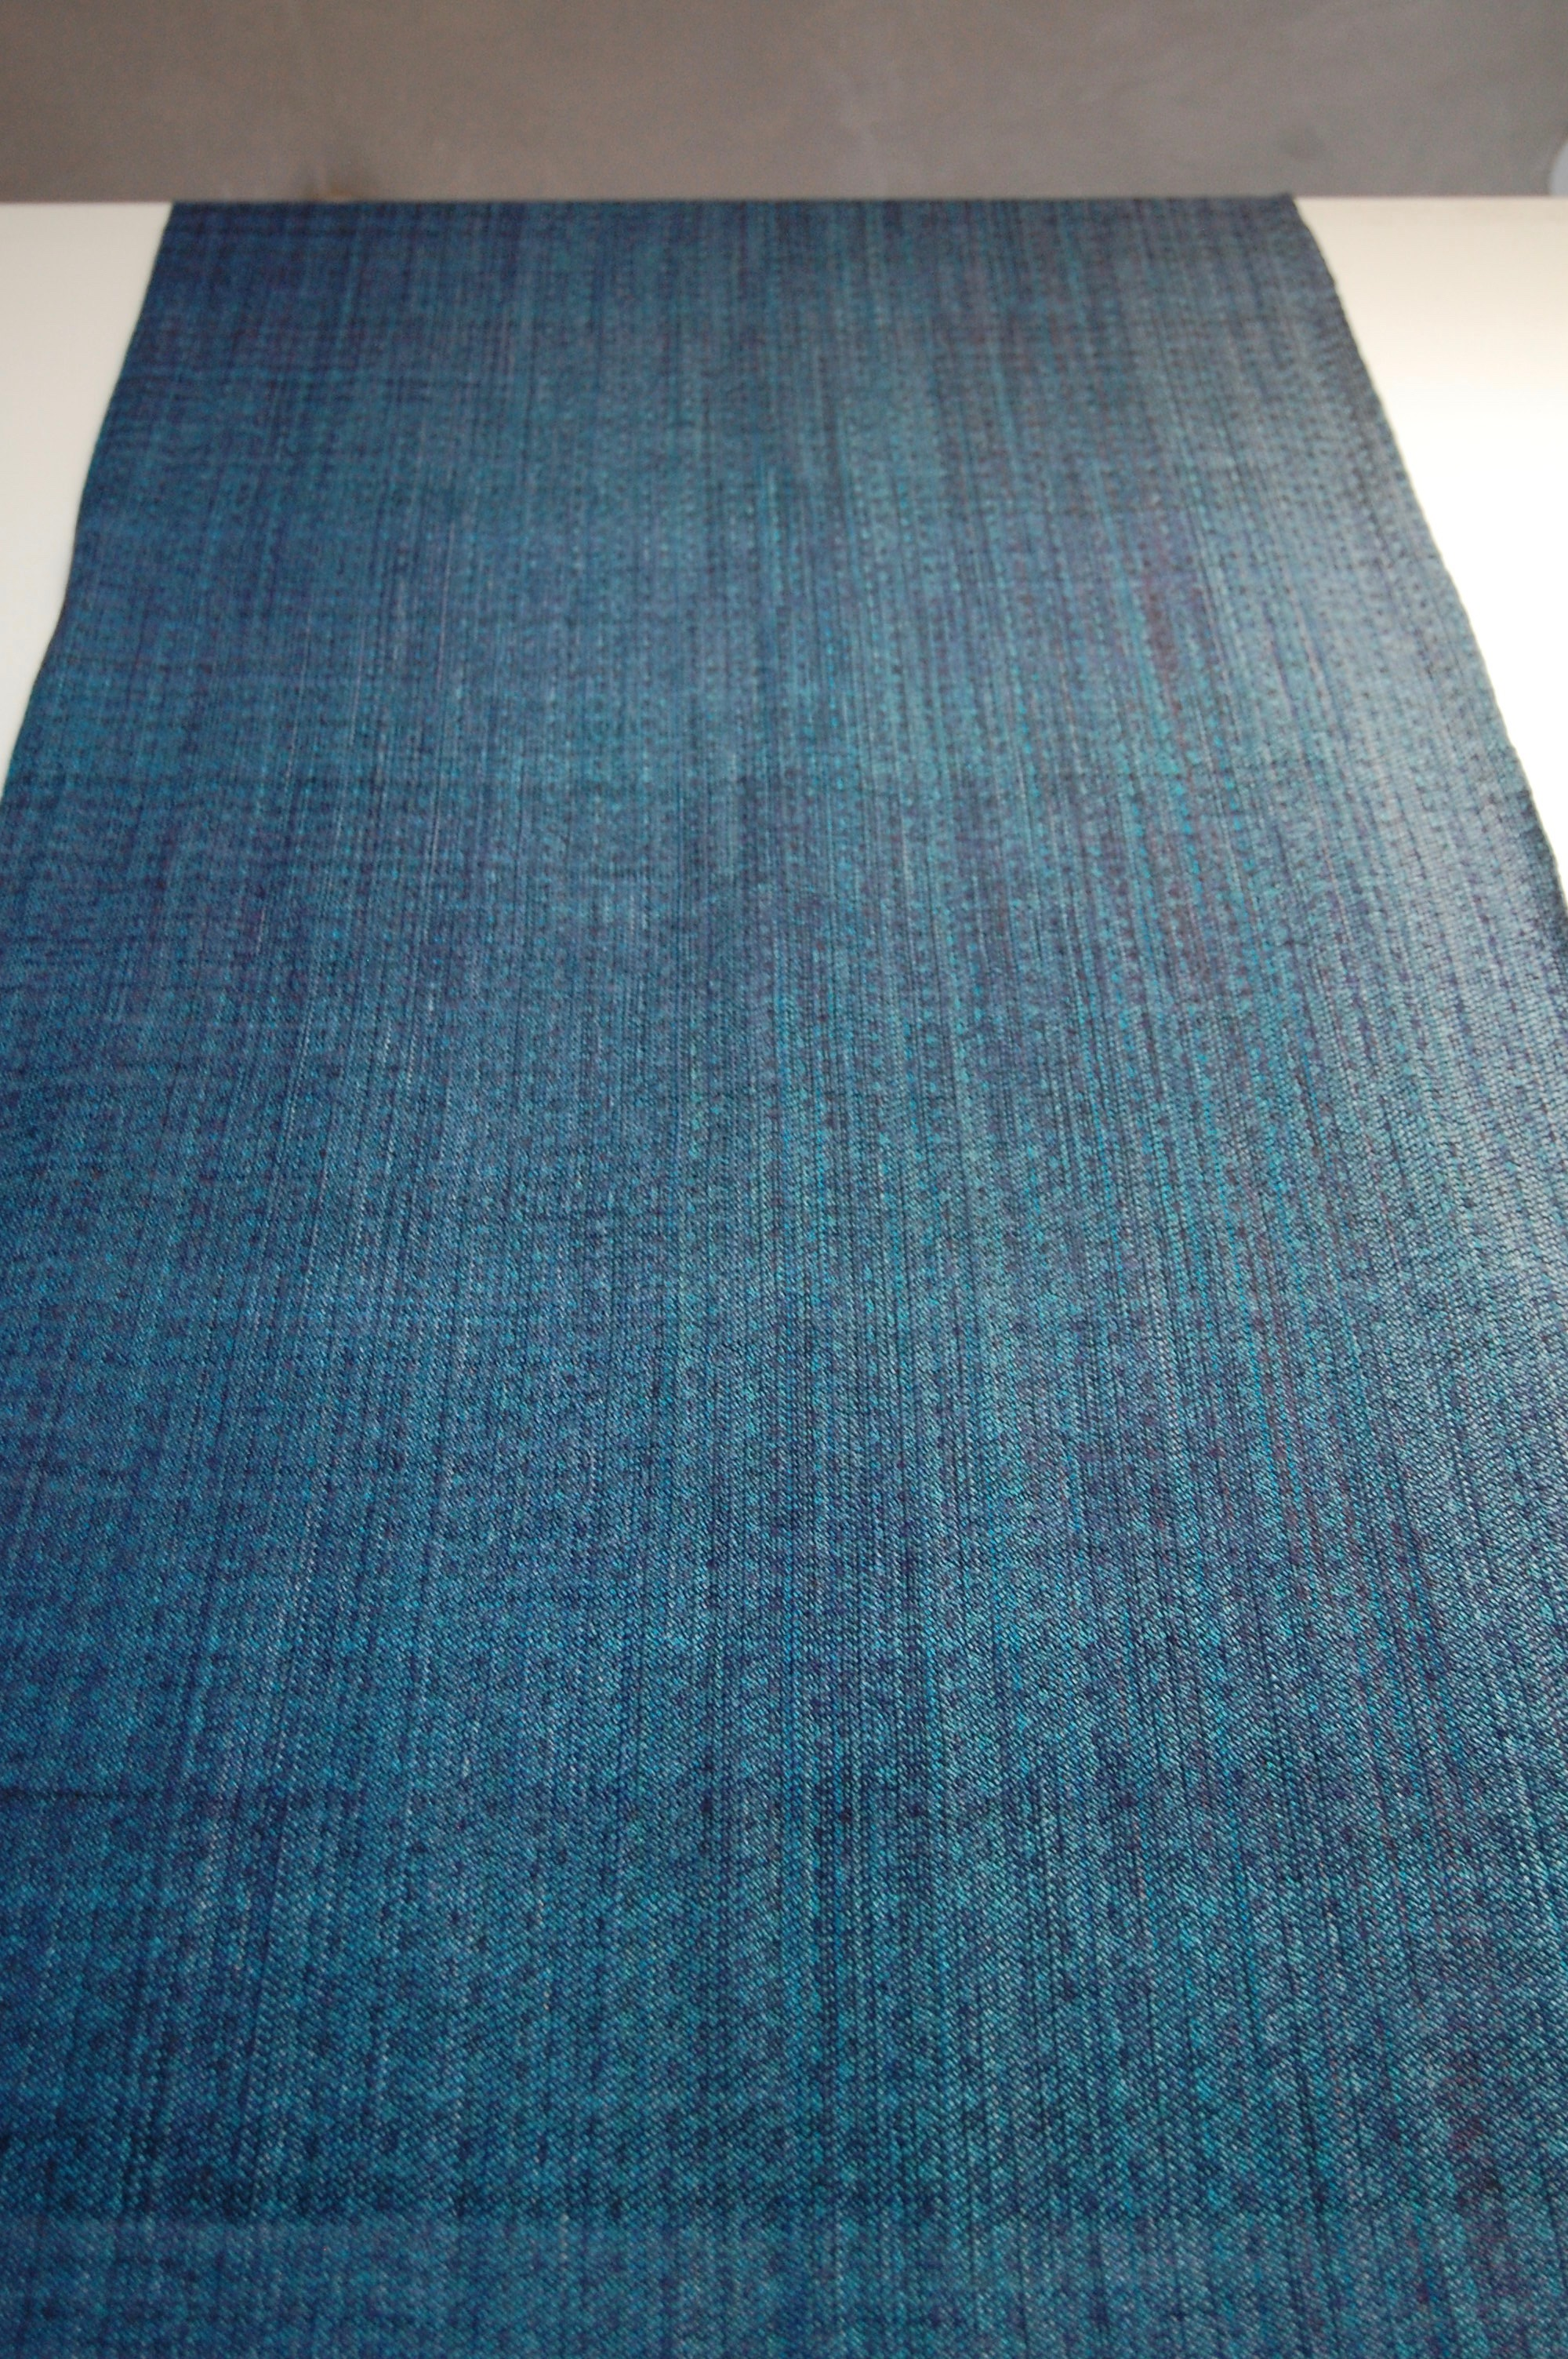 ione superwash merino wool weft 3.3 meters